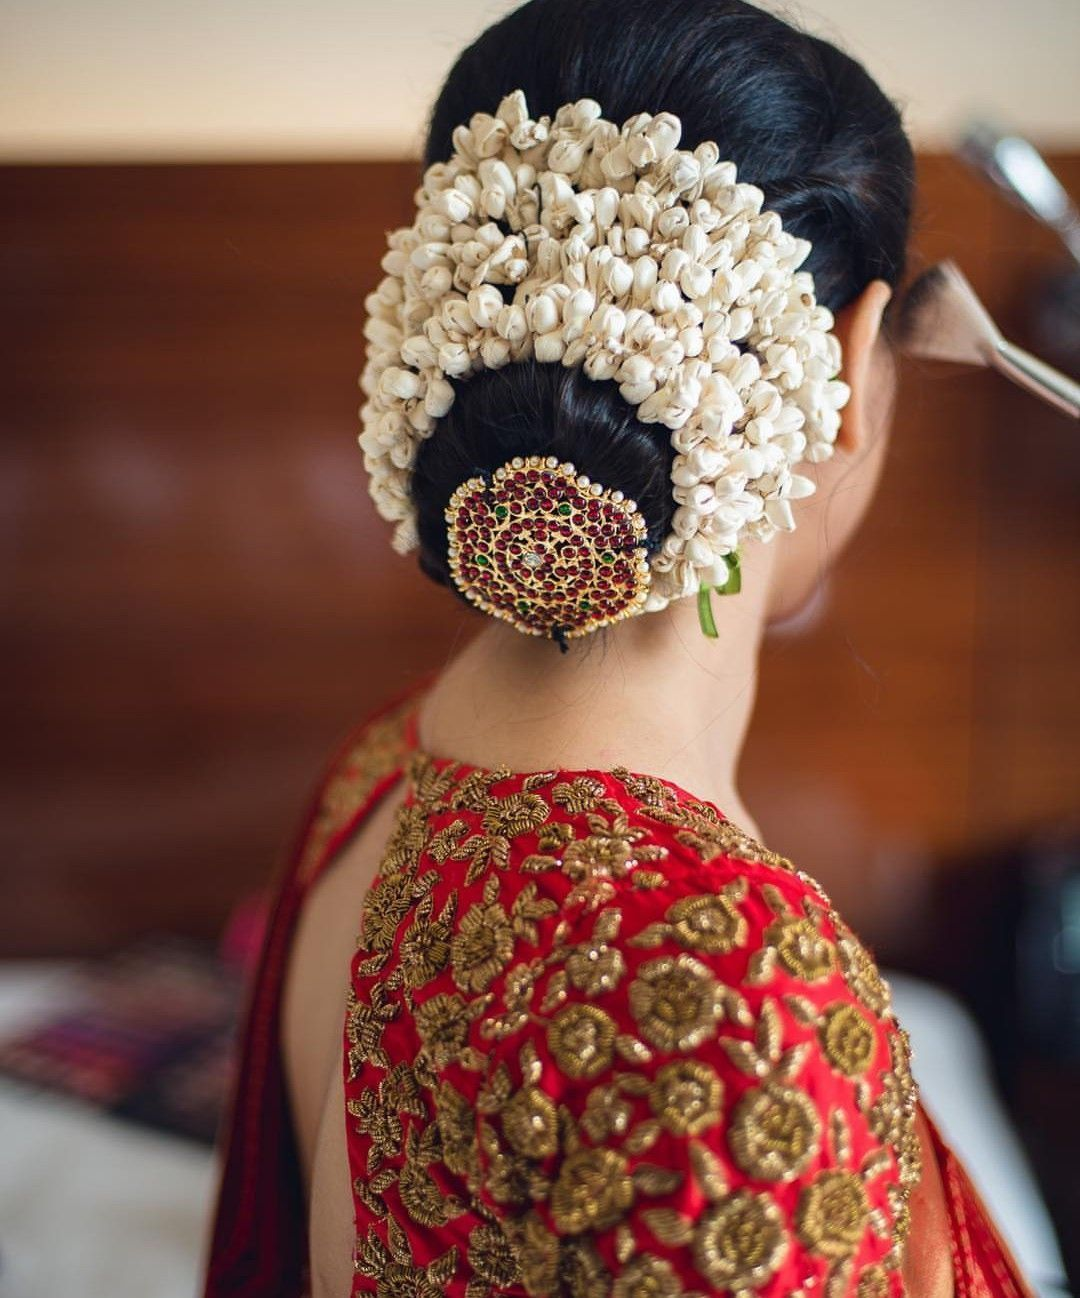 New Wedding Bun Hairstyle Indi New Wedding Bun Hairstyle Indian 2021 Wedding Bun H In 2020 South Indian Wedding Hairstyles Bridal Hair Brooch Indian Bridal Hairstyles